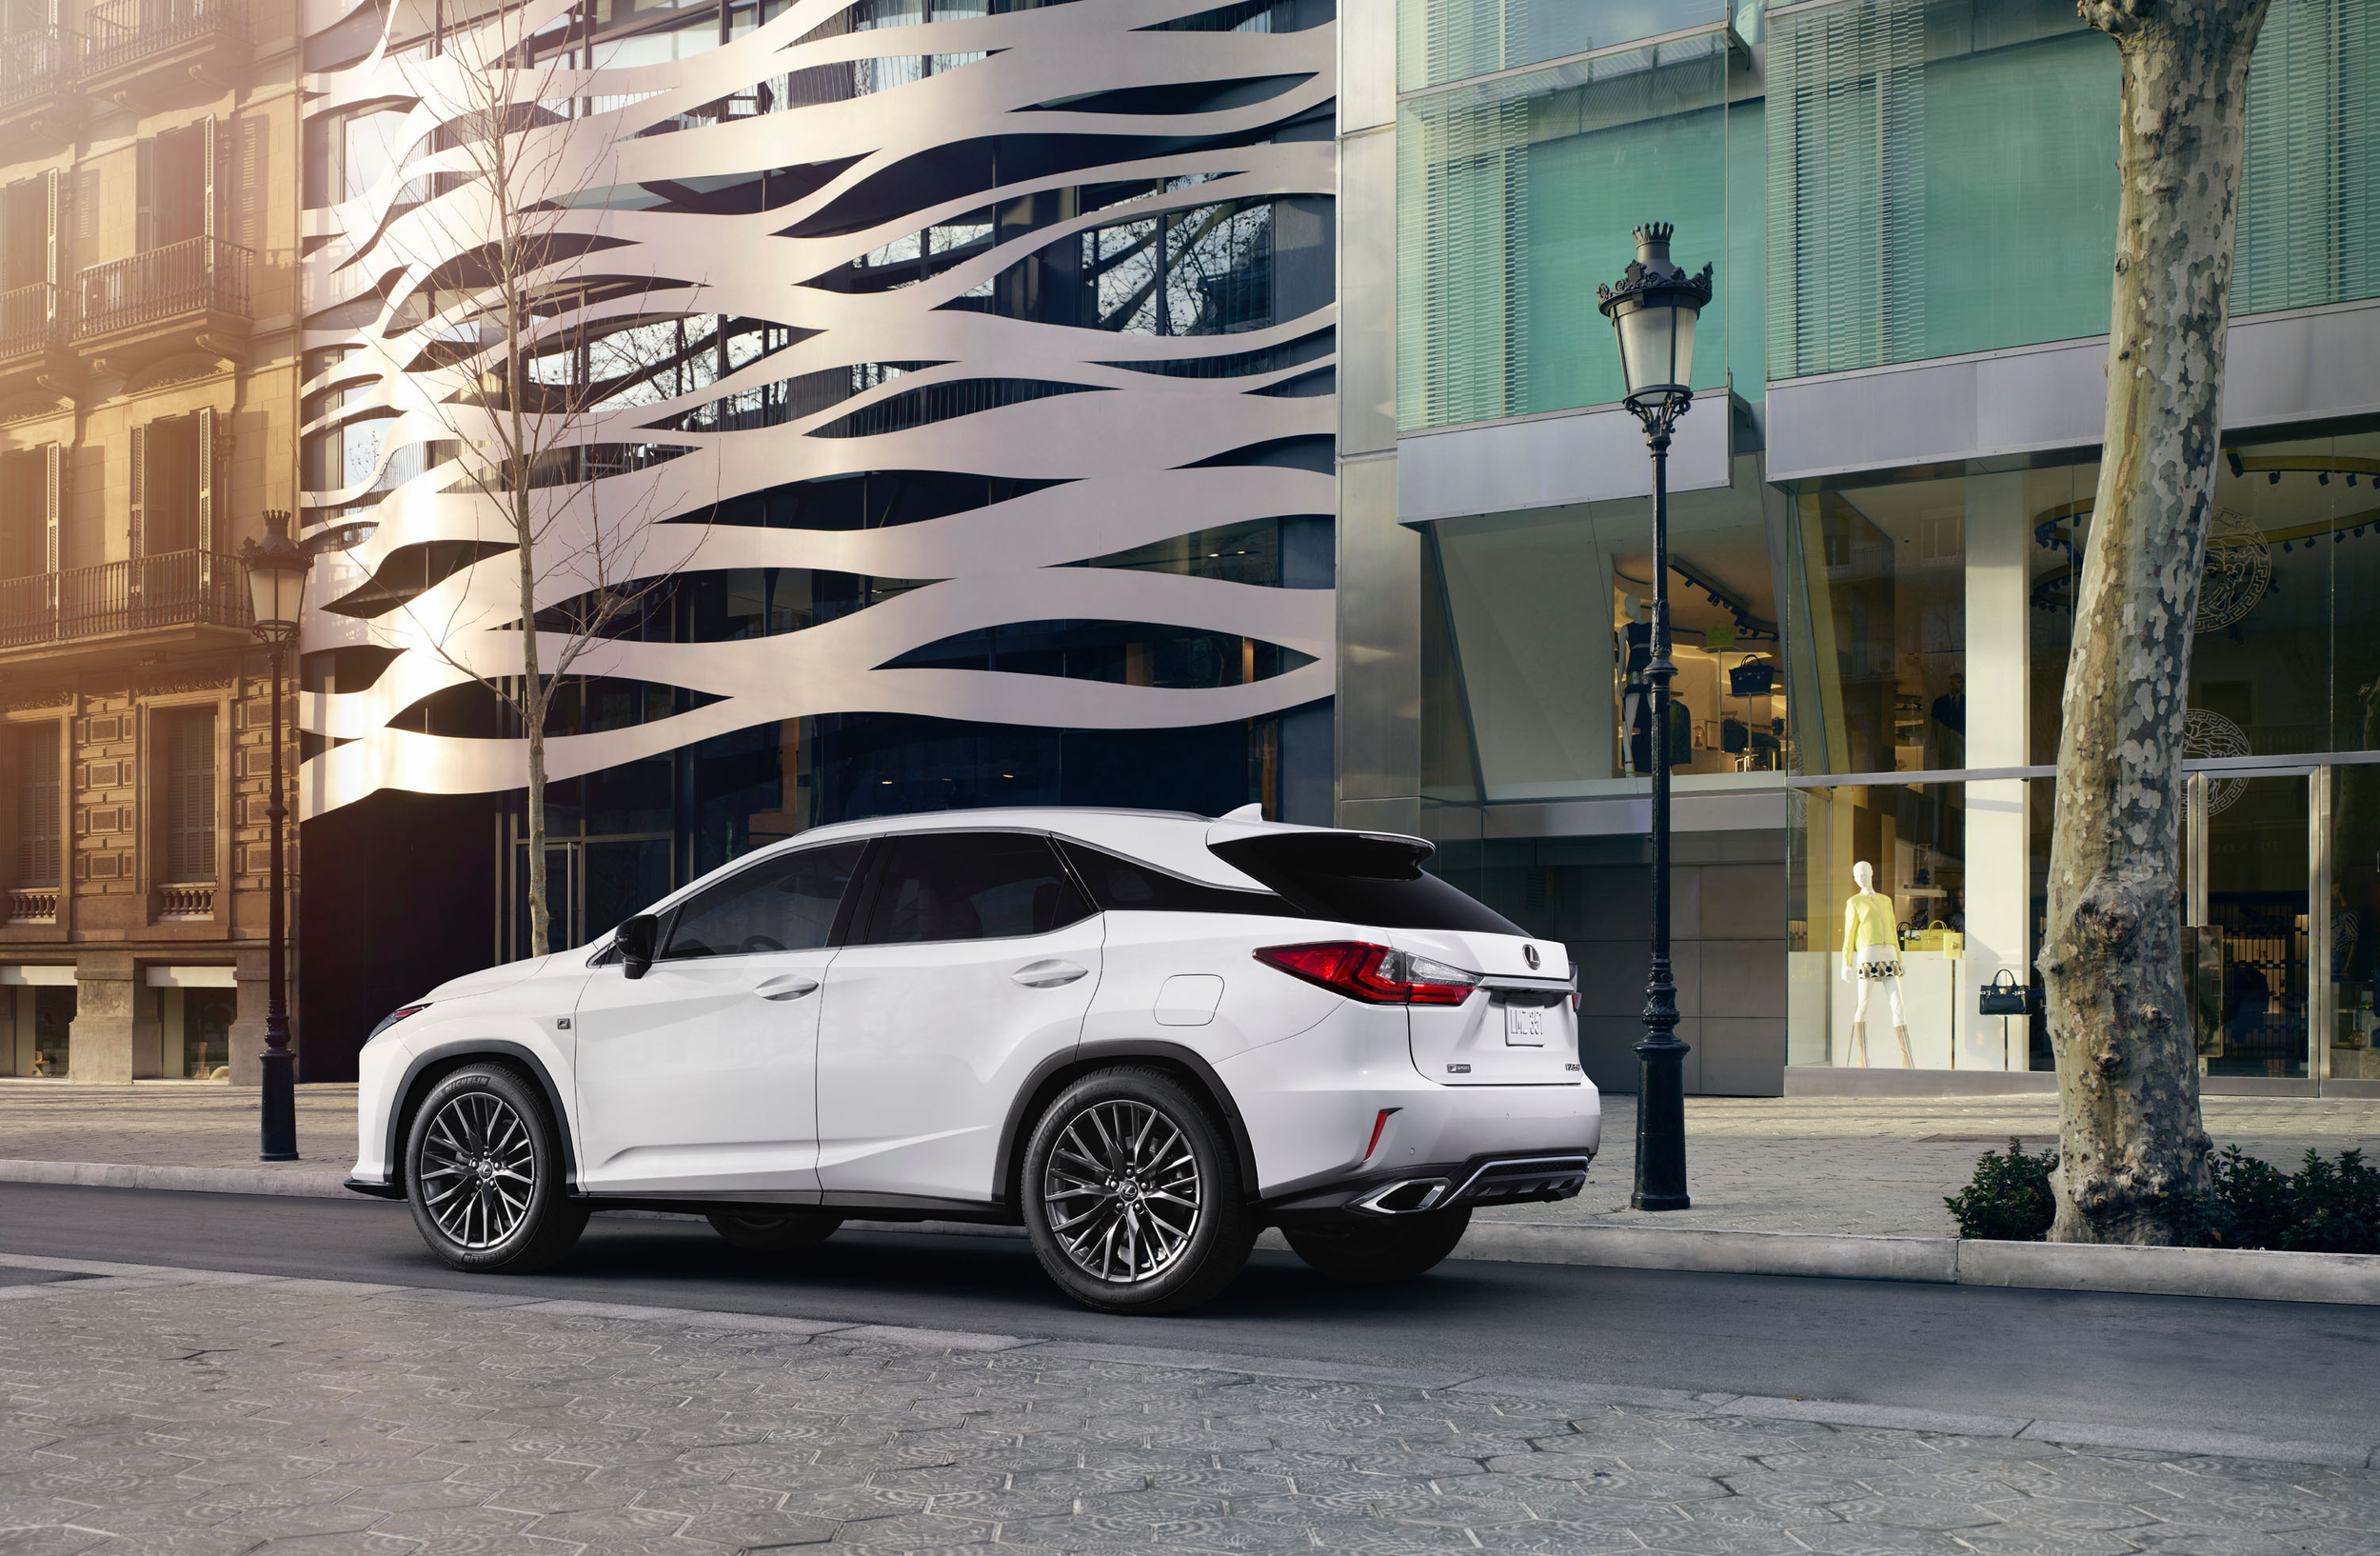 2019 Lexus RX 350 photo - 6